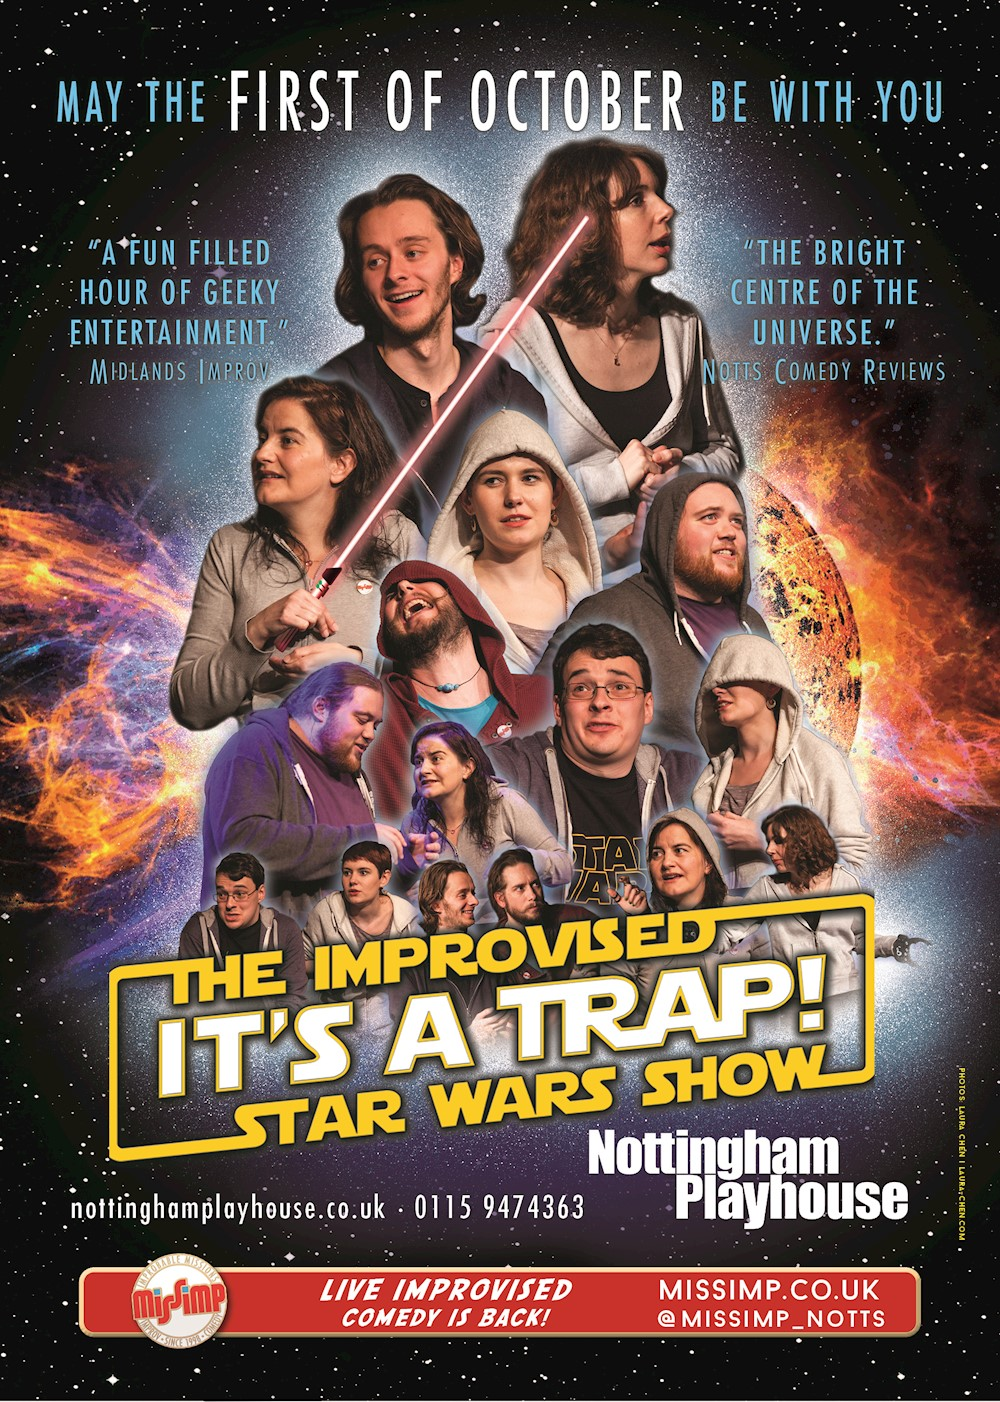 IT'S A TRAP! The Improvised Star Wars Show